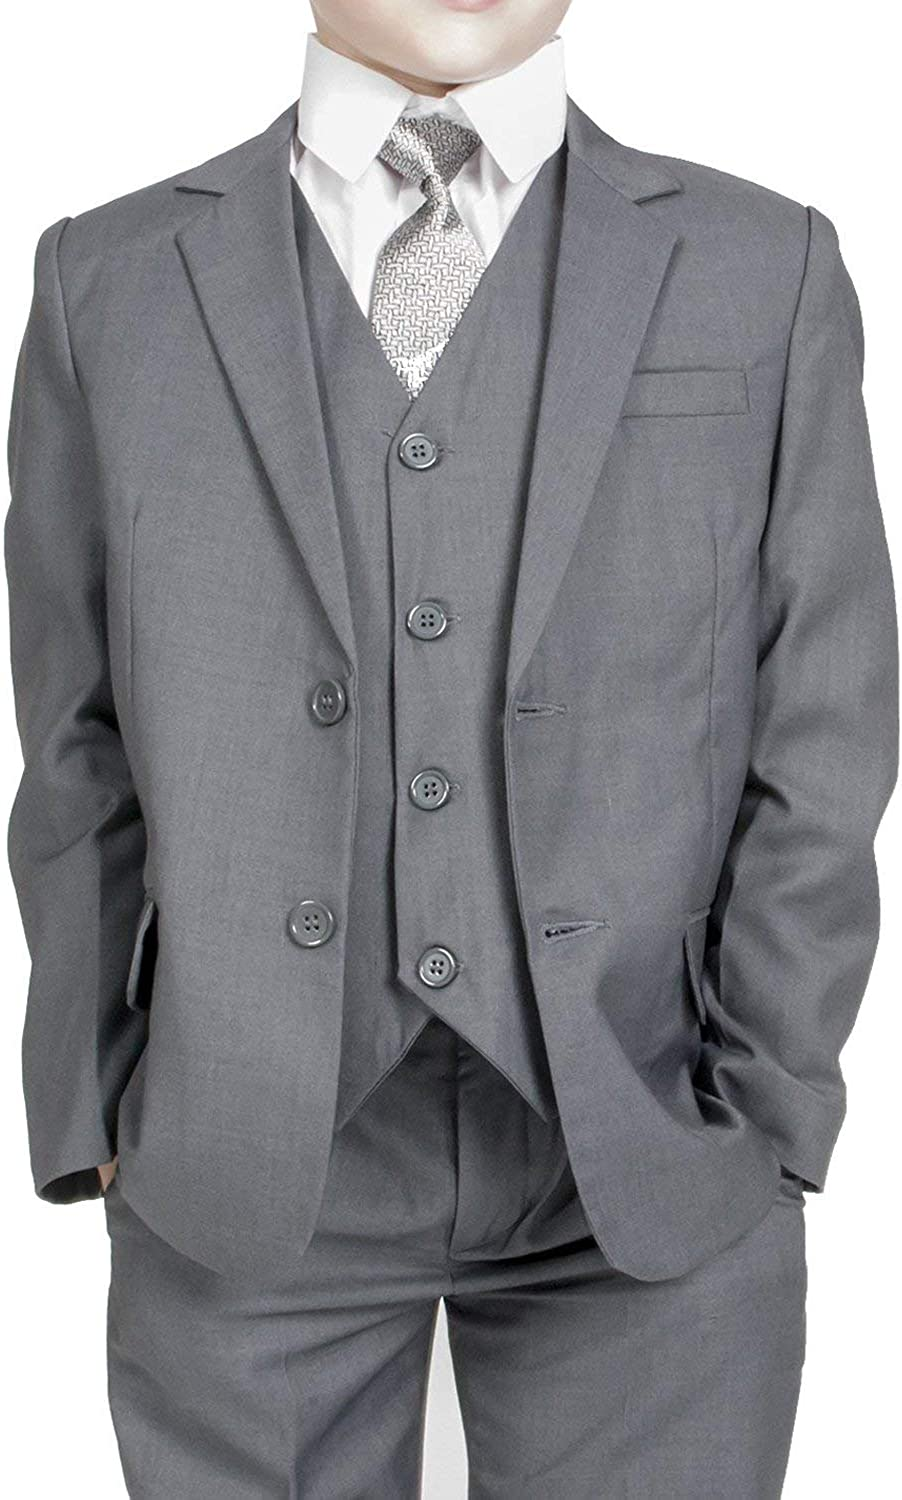 Grey Boys Tuxedo 3-Piece Dress Suit Set for Infant Toddler Children and Teen